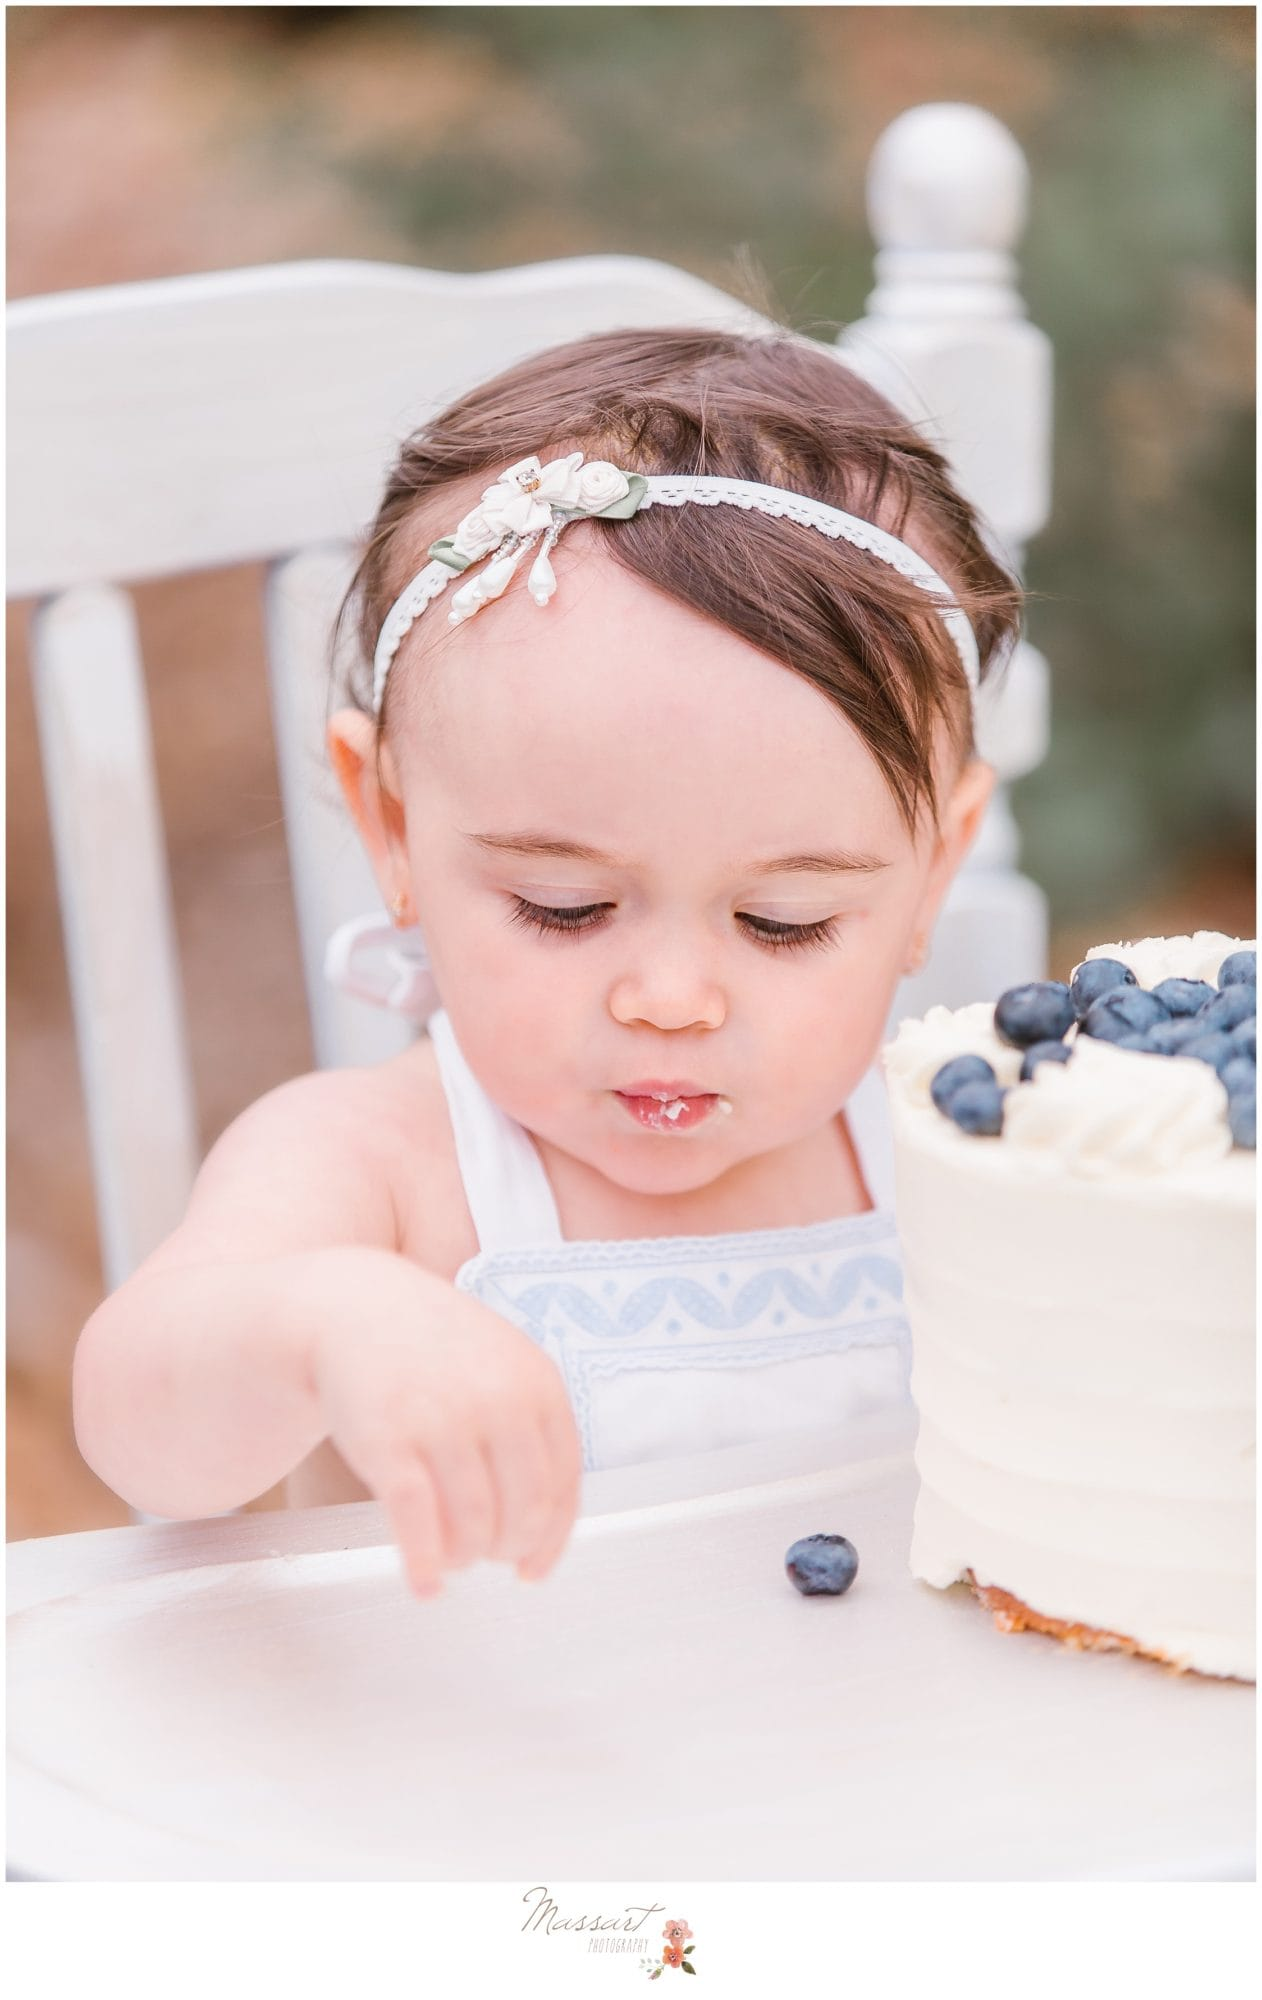 Baby girl eats her blueberry cake during her milestone cake smash session photographed by Massart Photography Rhode Island